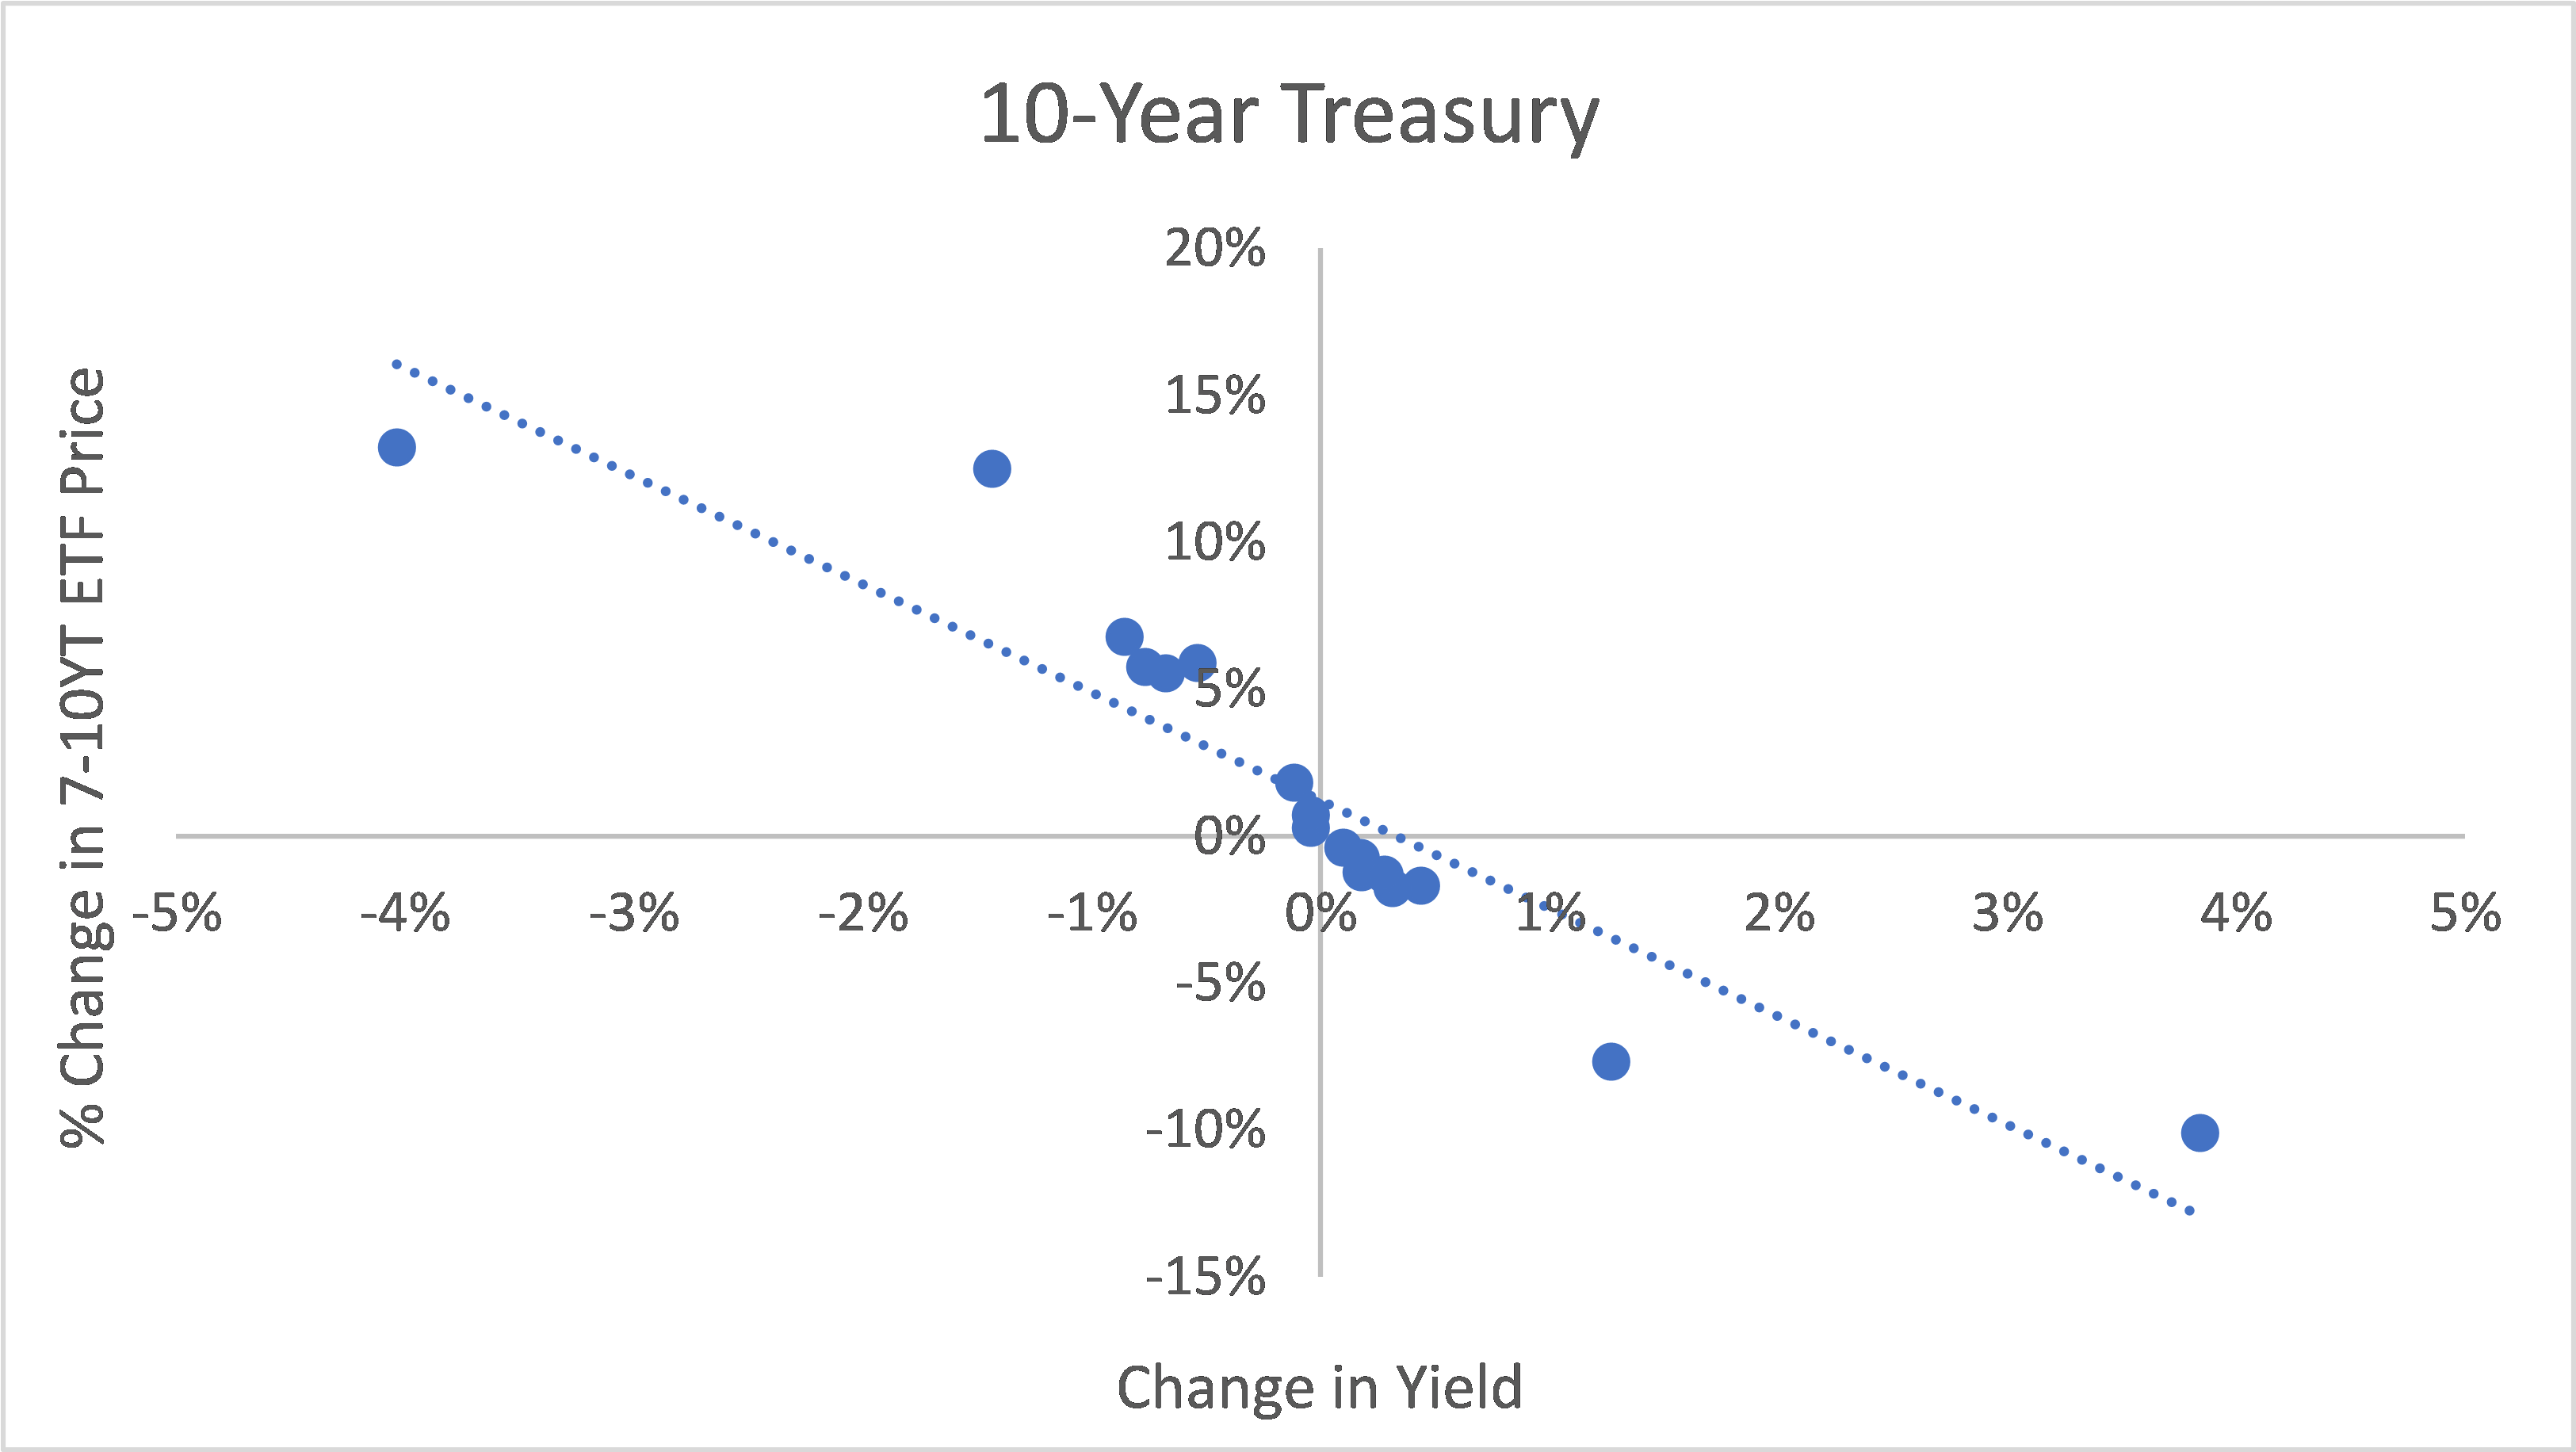 Change in Price goes down when yield on 10-Year Treasury goes up